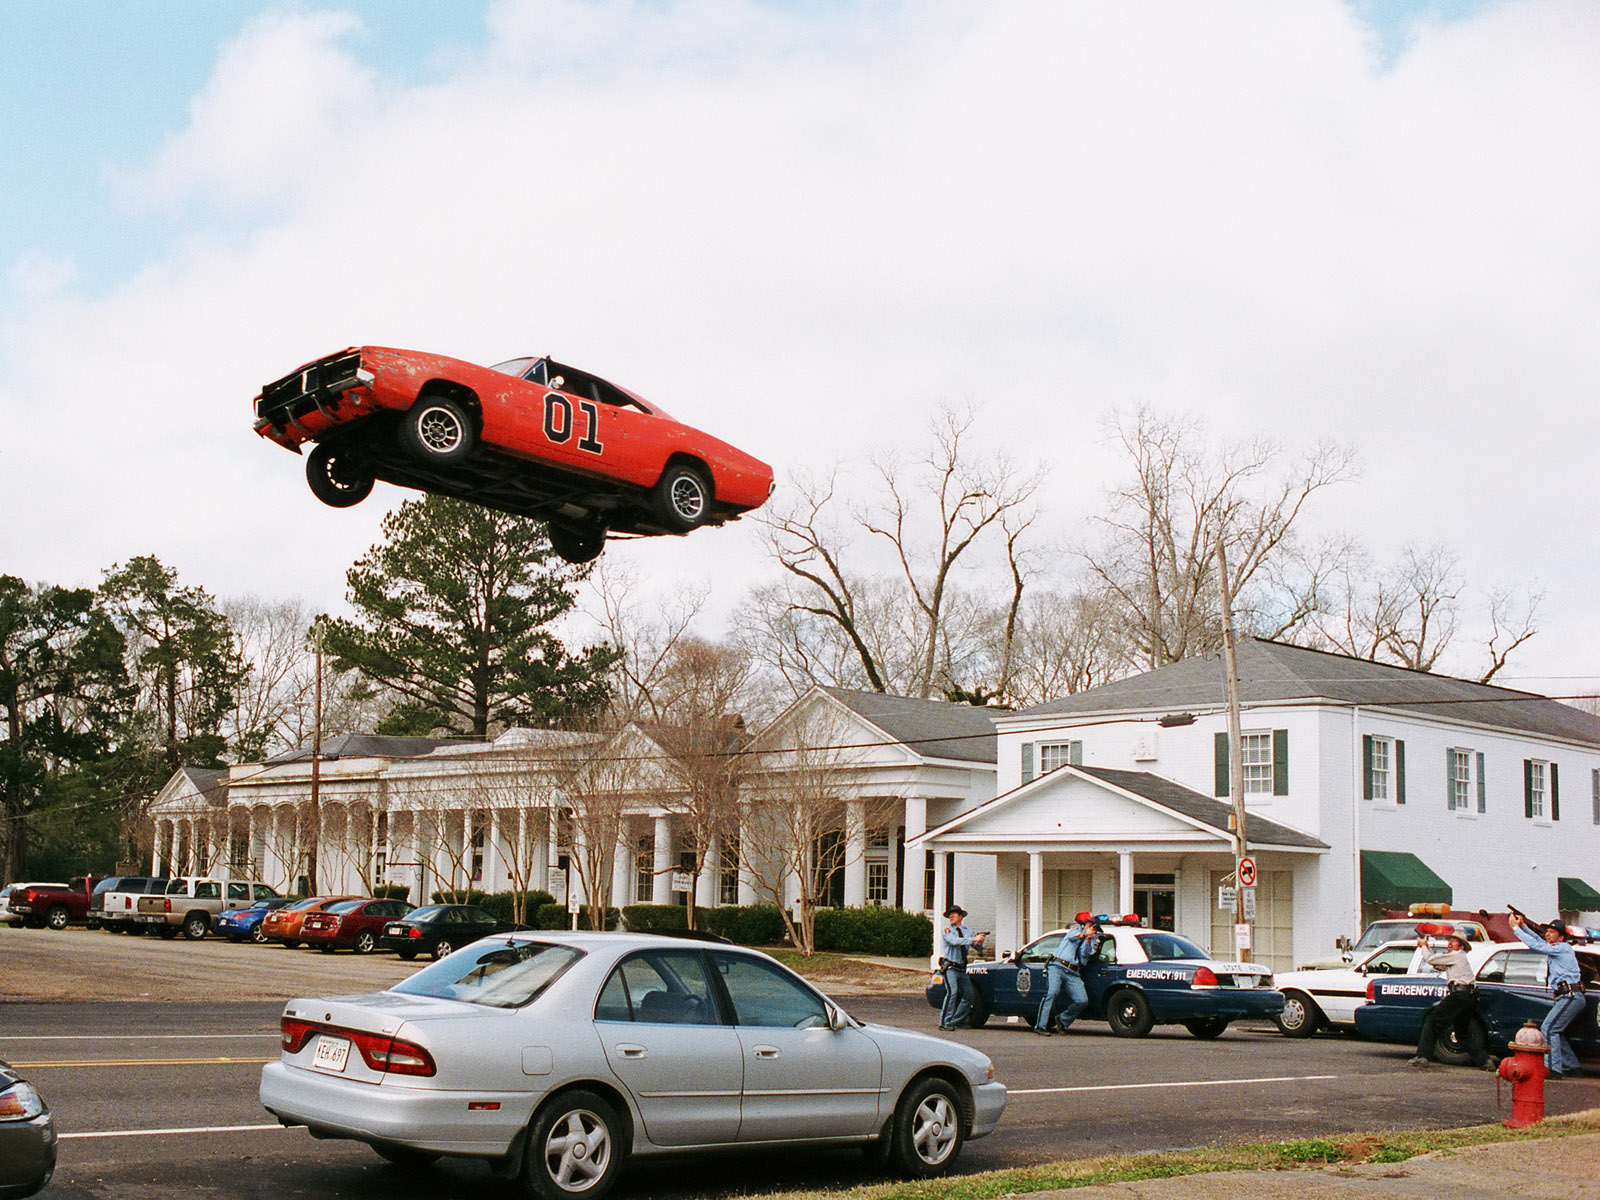 1969-dodge-charger-general-lee-doh-jump-police-cars-1600x1200.jpg